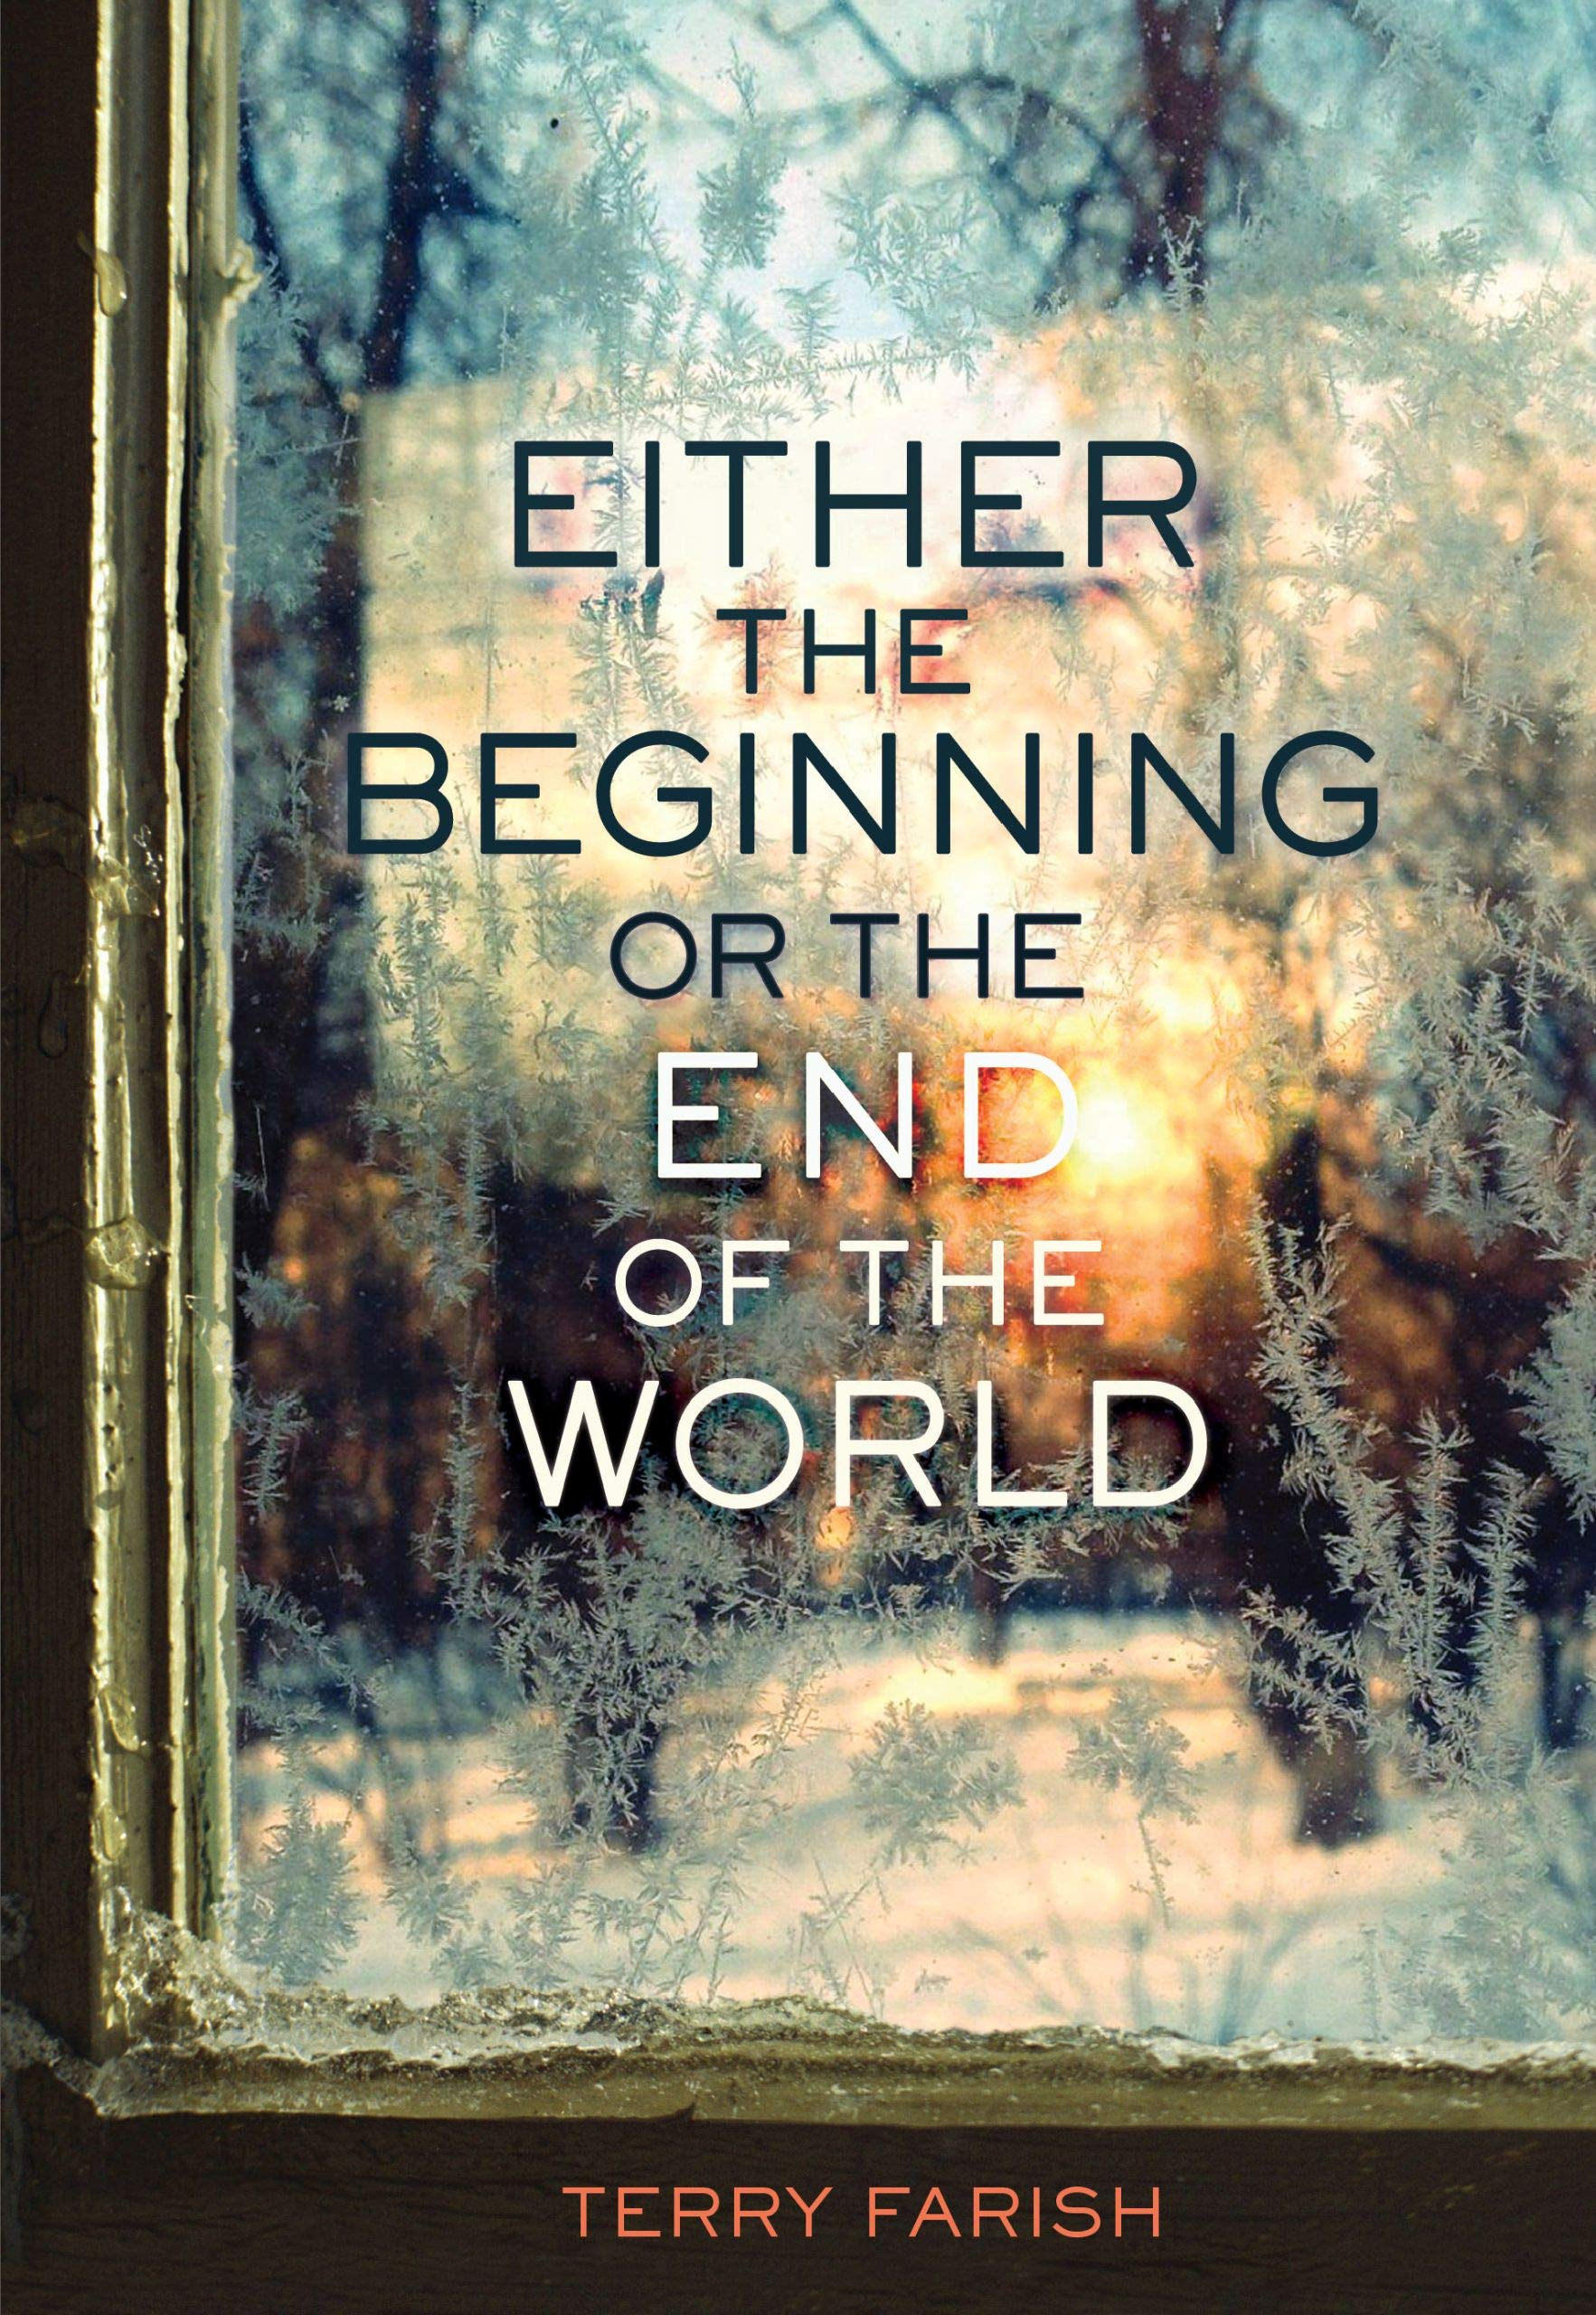 Either The Beginning Or The End Of The World 9781467774833 Farish Terry Books